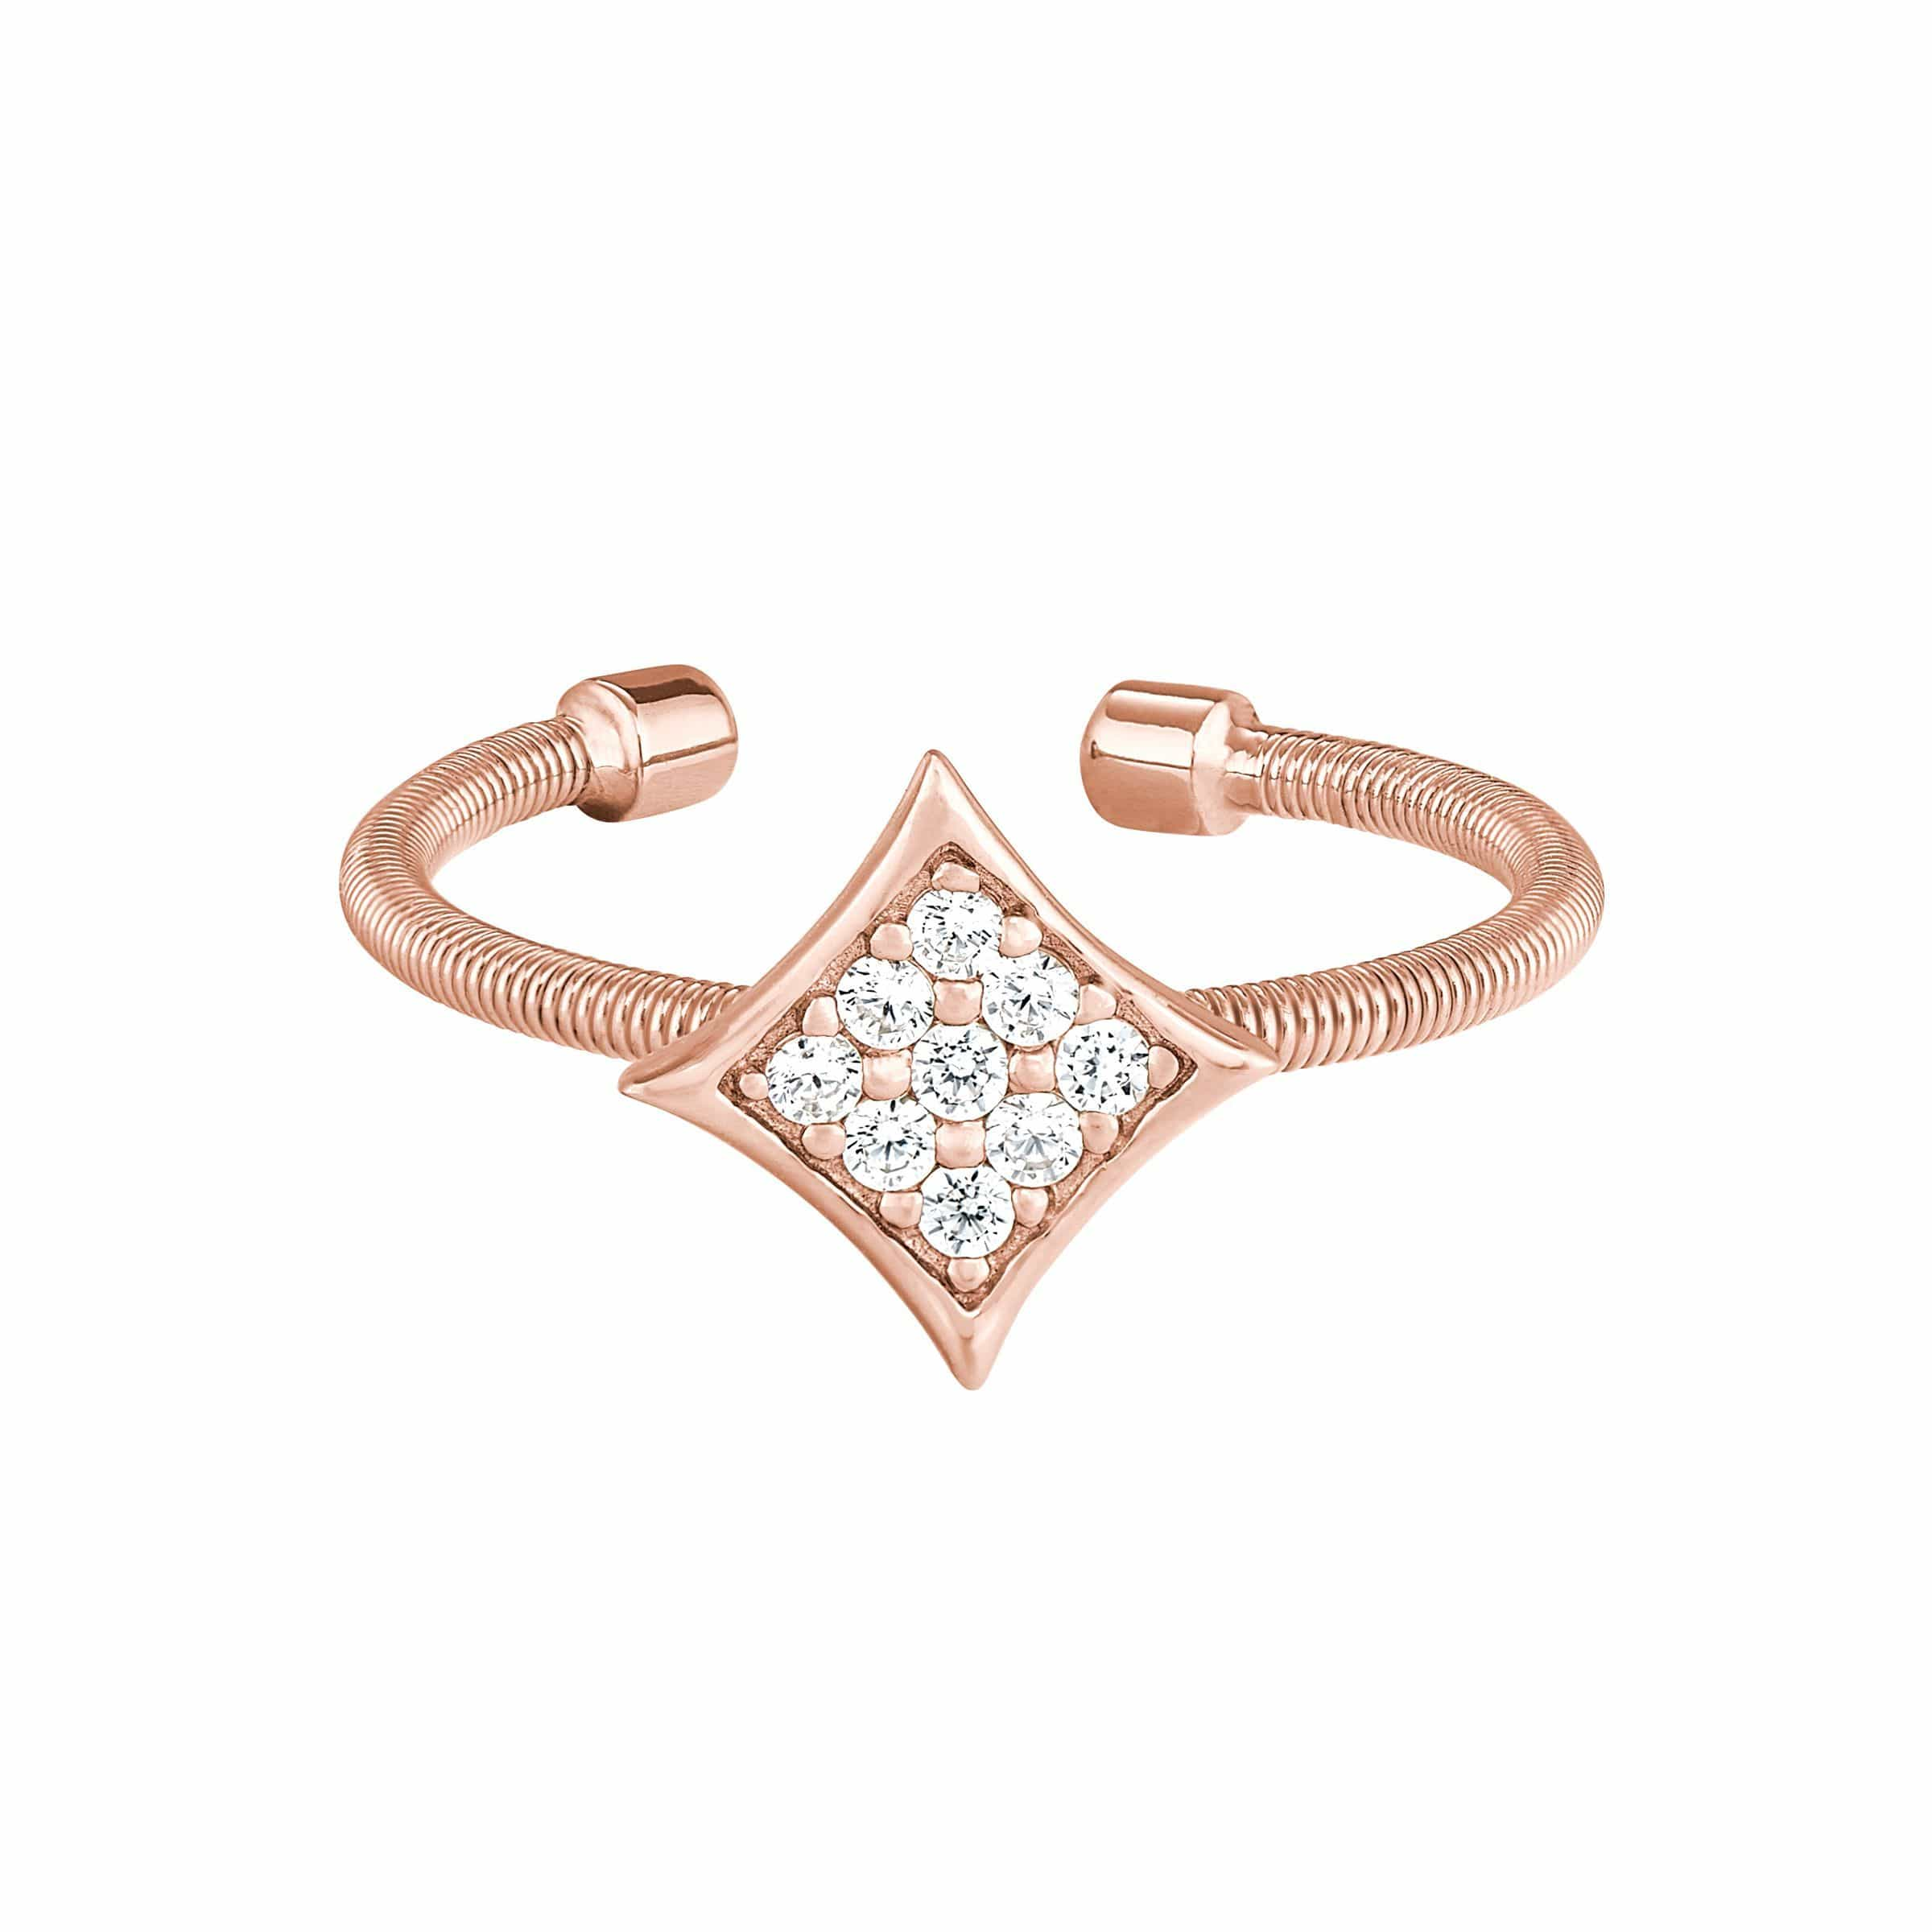 Rose Gold Finish Sterling Silver Cable Cuff Diamond Shaped Ring - LL7088R-RG-5-Kelly Waters-Renee Taylor Gallery